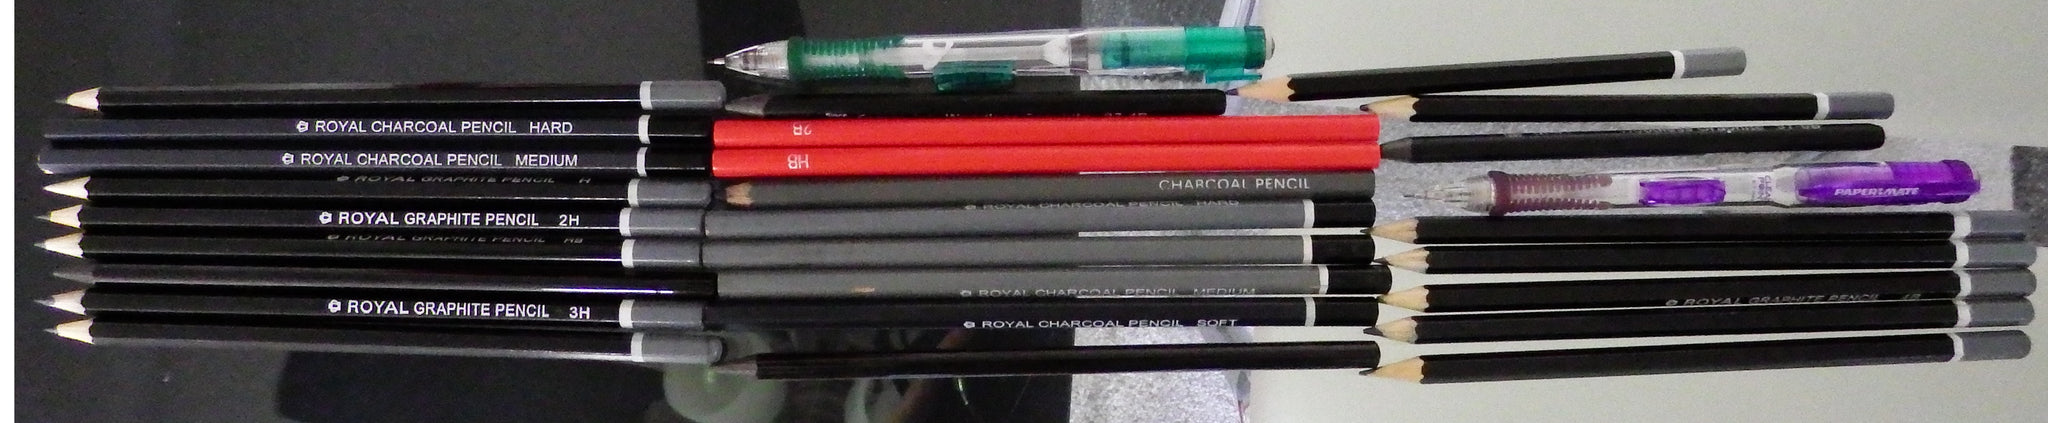 artsy sister,sketch pencils,art supplies